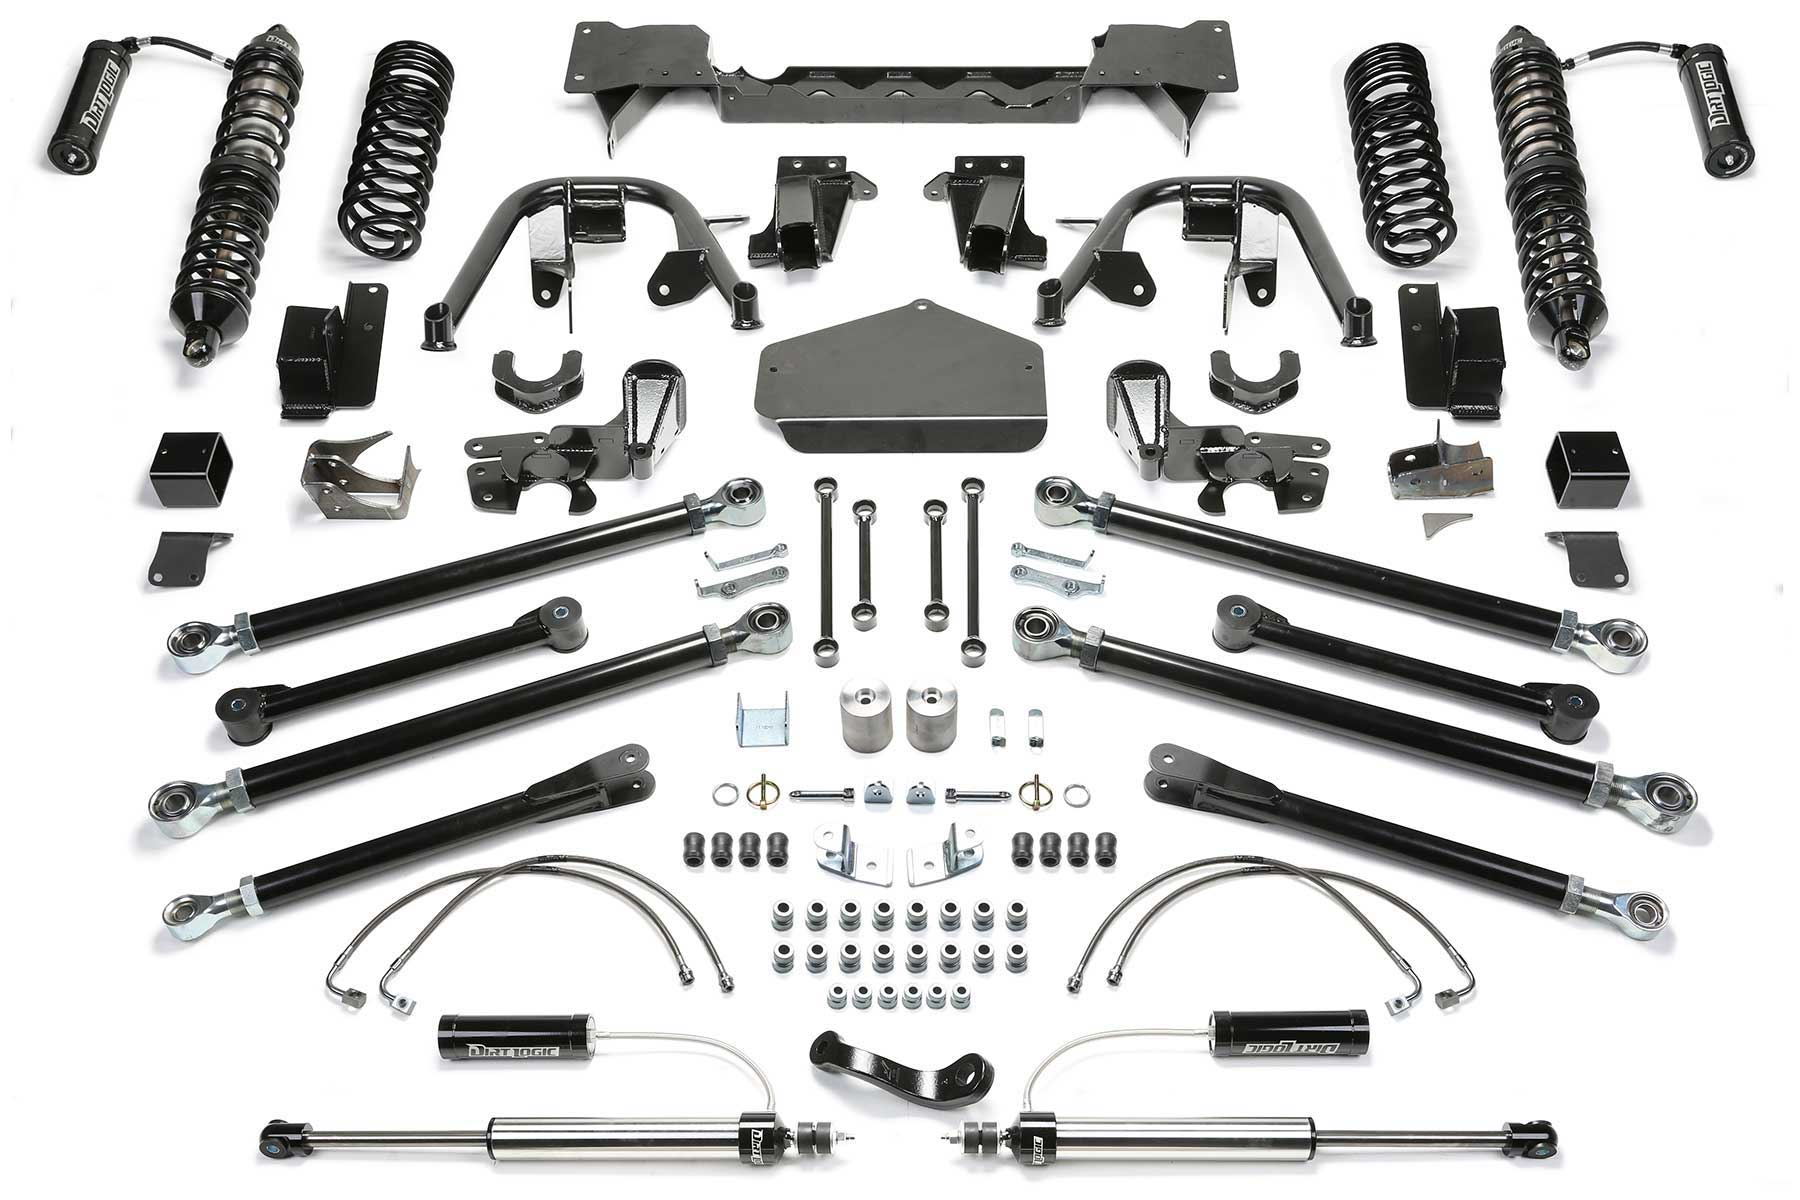 5 Crawler Coilover System W Front Dirt Logic 2 5 Resi Coilovers Amp Rear Dirt Logic 2 25 Resi